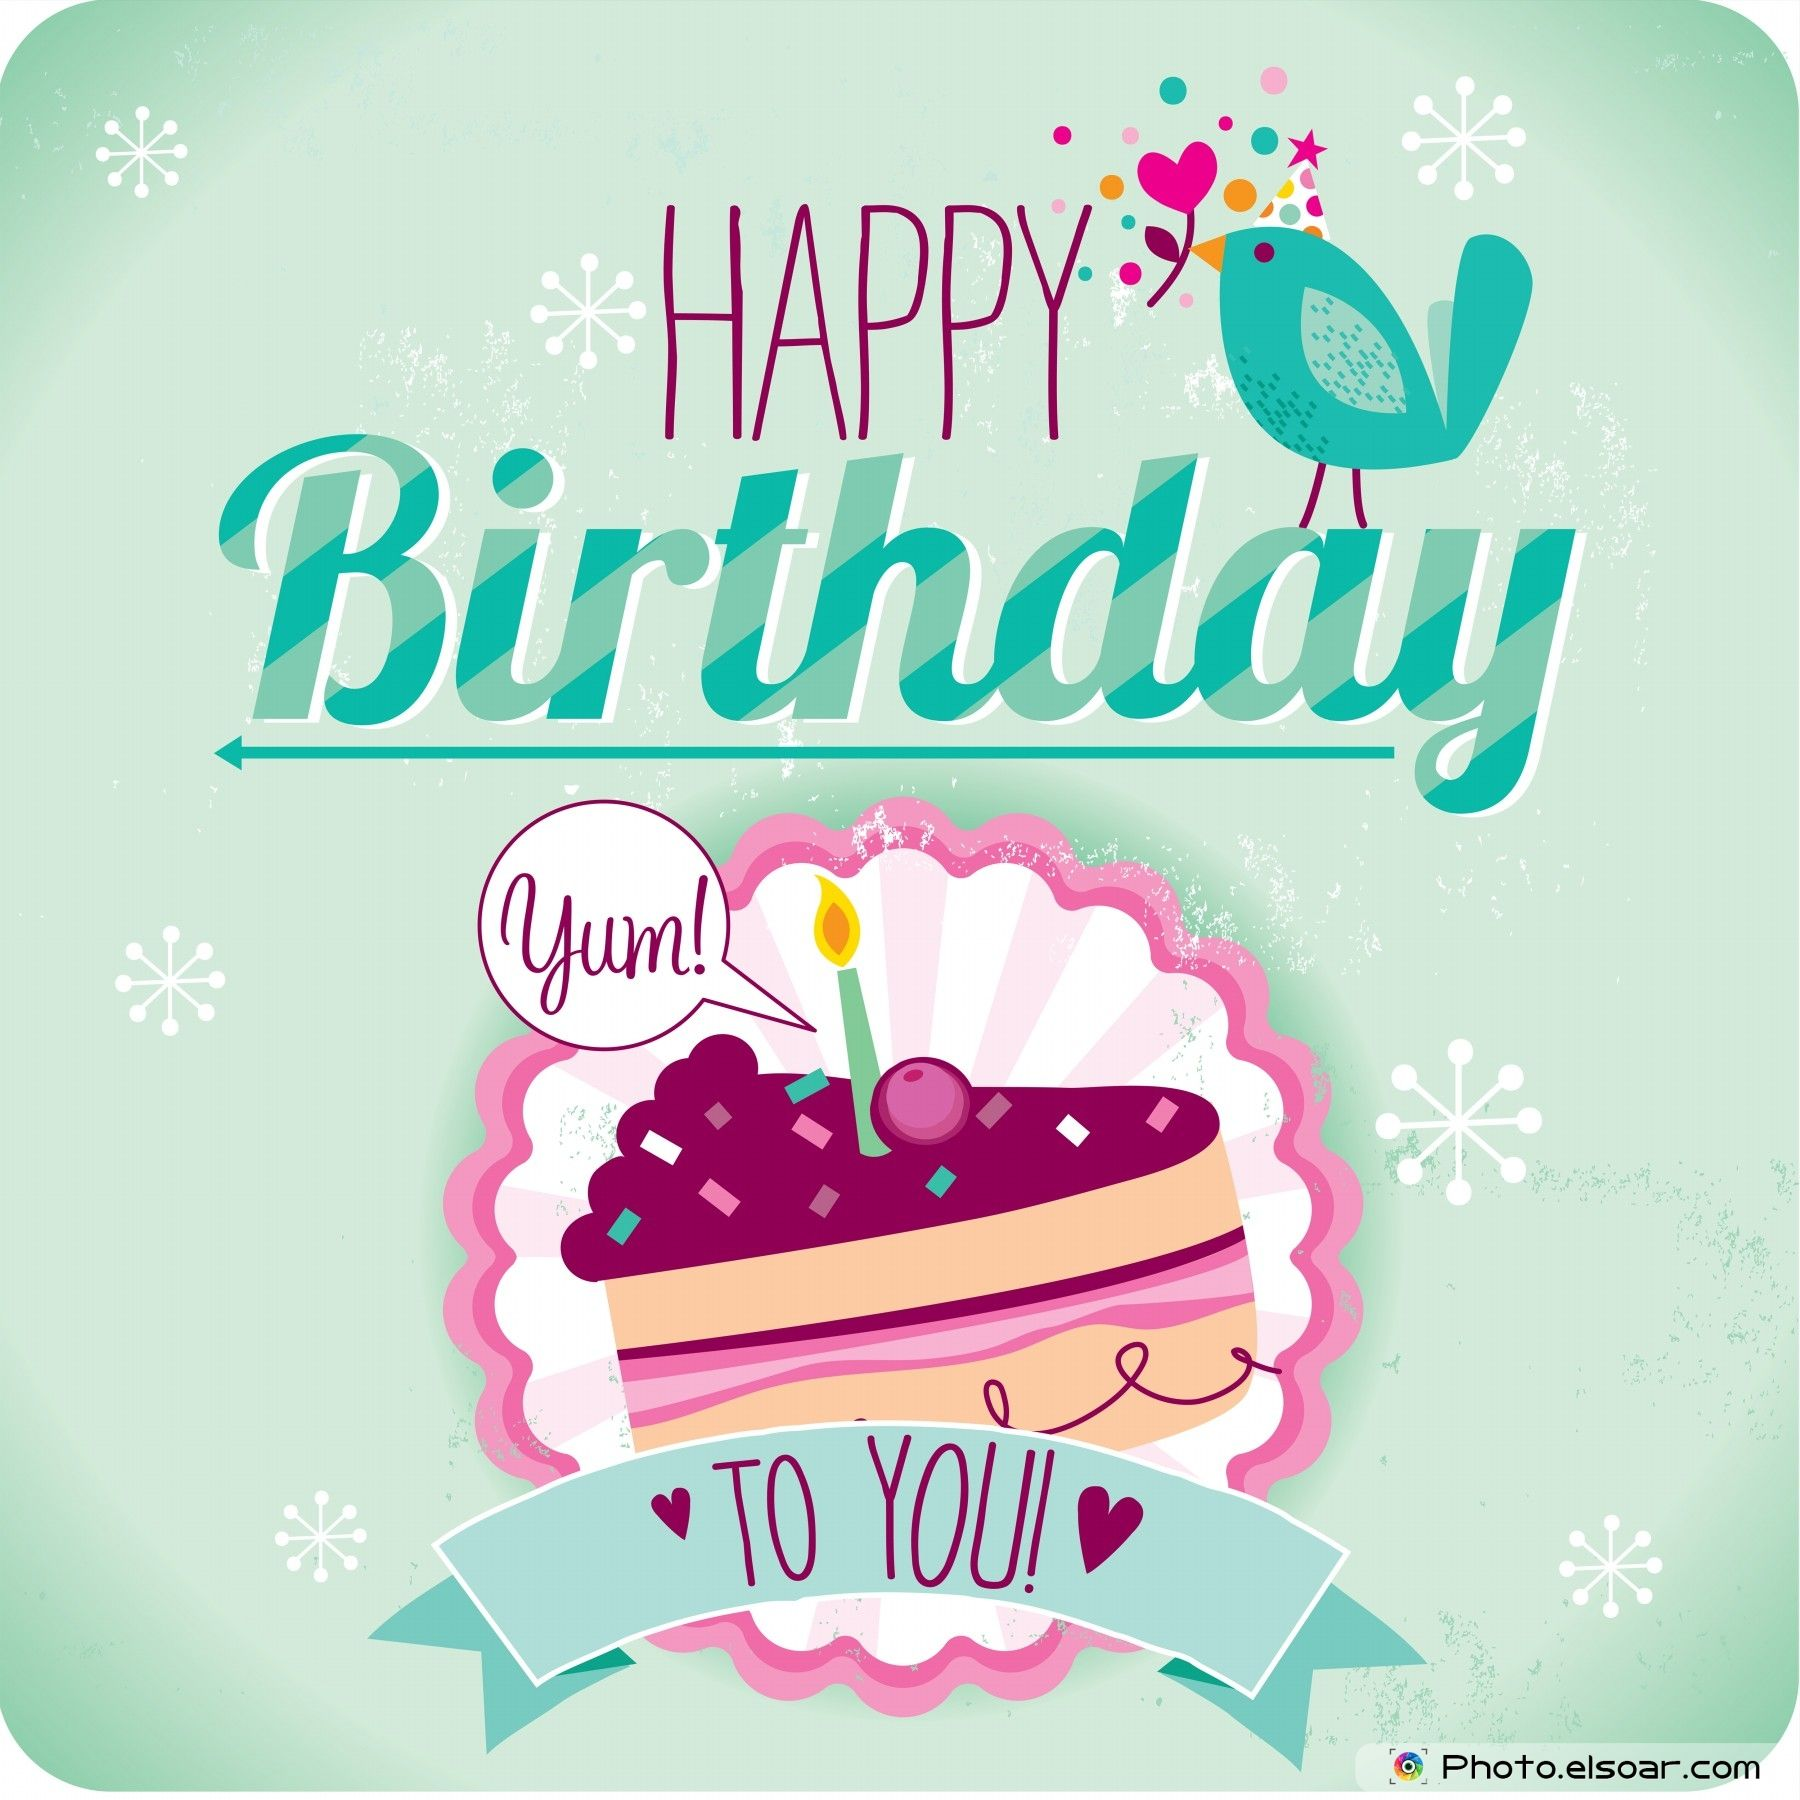 Get Free Happy Birthday Wallpaper Image Photo Pics For Tumblr BDay Online Wishes Quotes SMS Messages Greeting Cards ECards Download